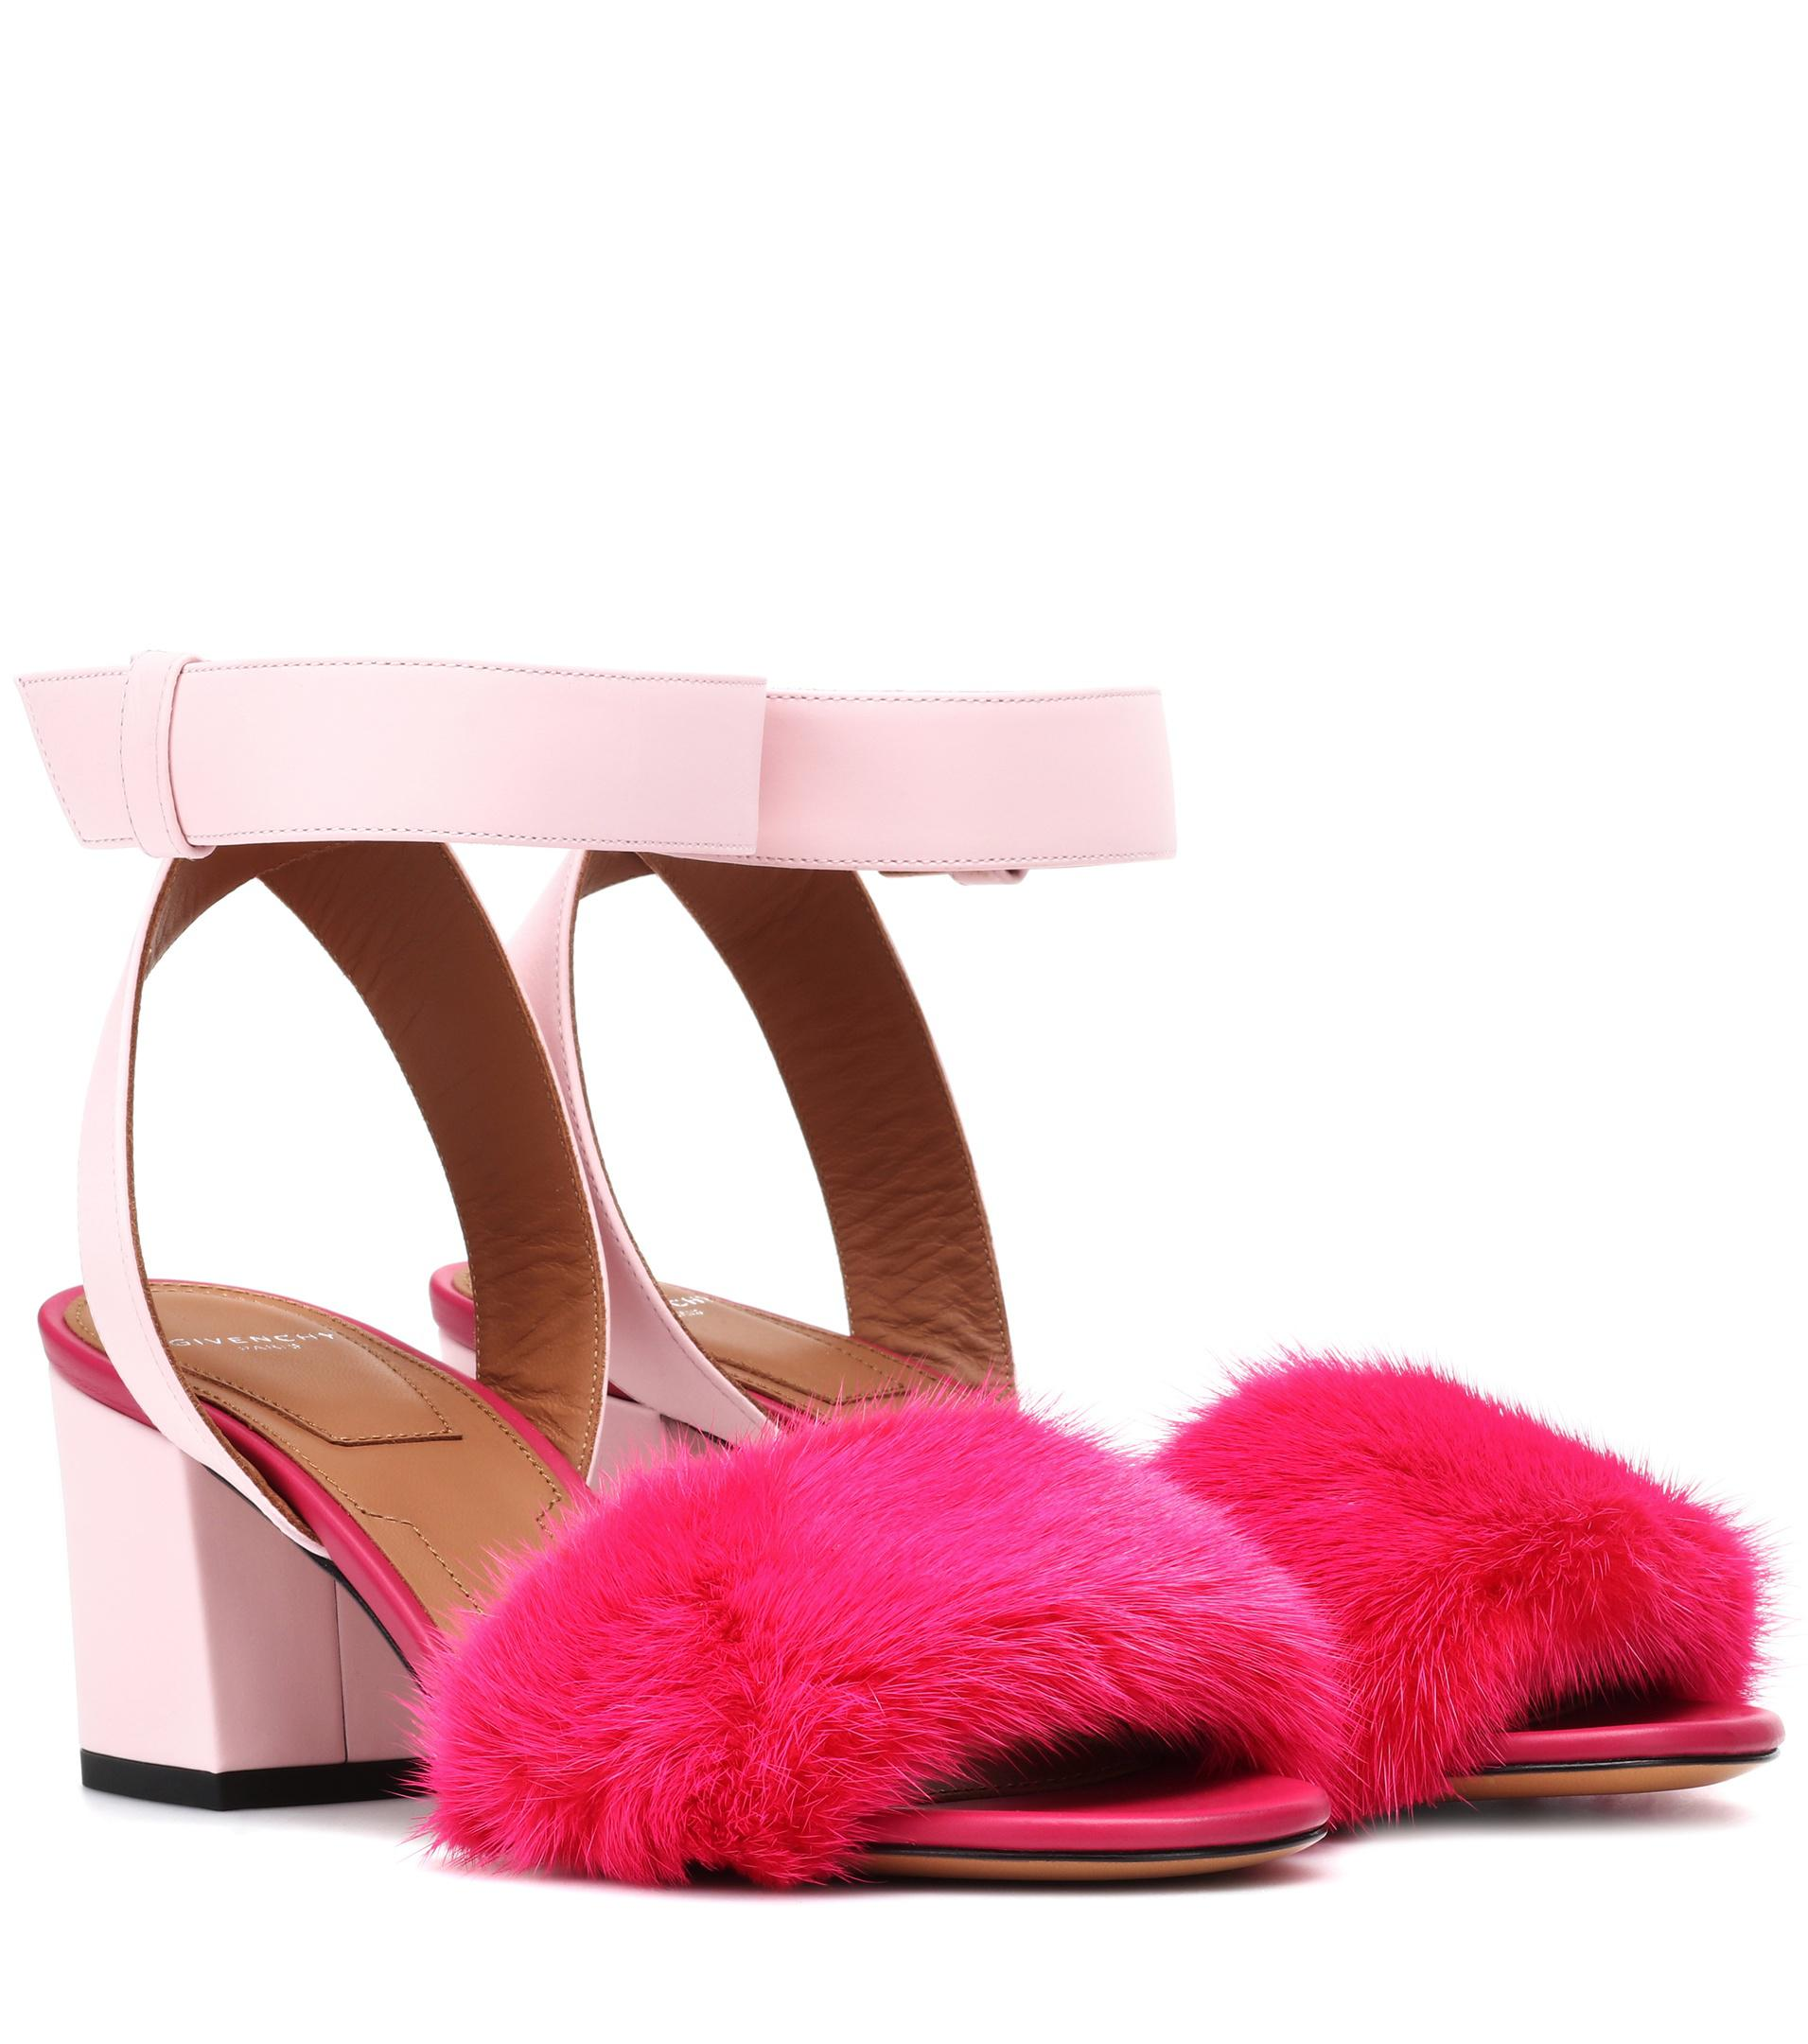 Givenchy Leather and fur-trimmed sandals 3VZf2Gbb4k